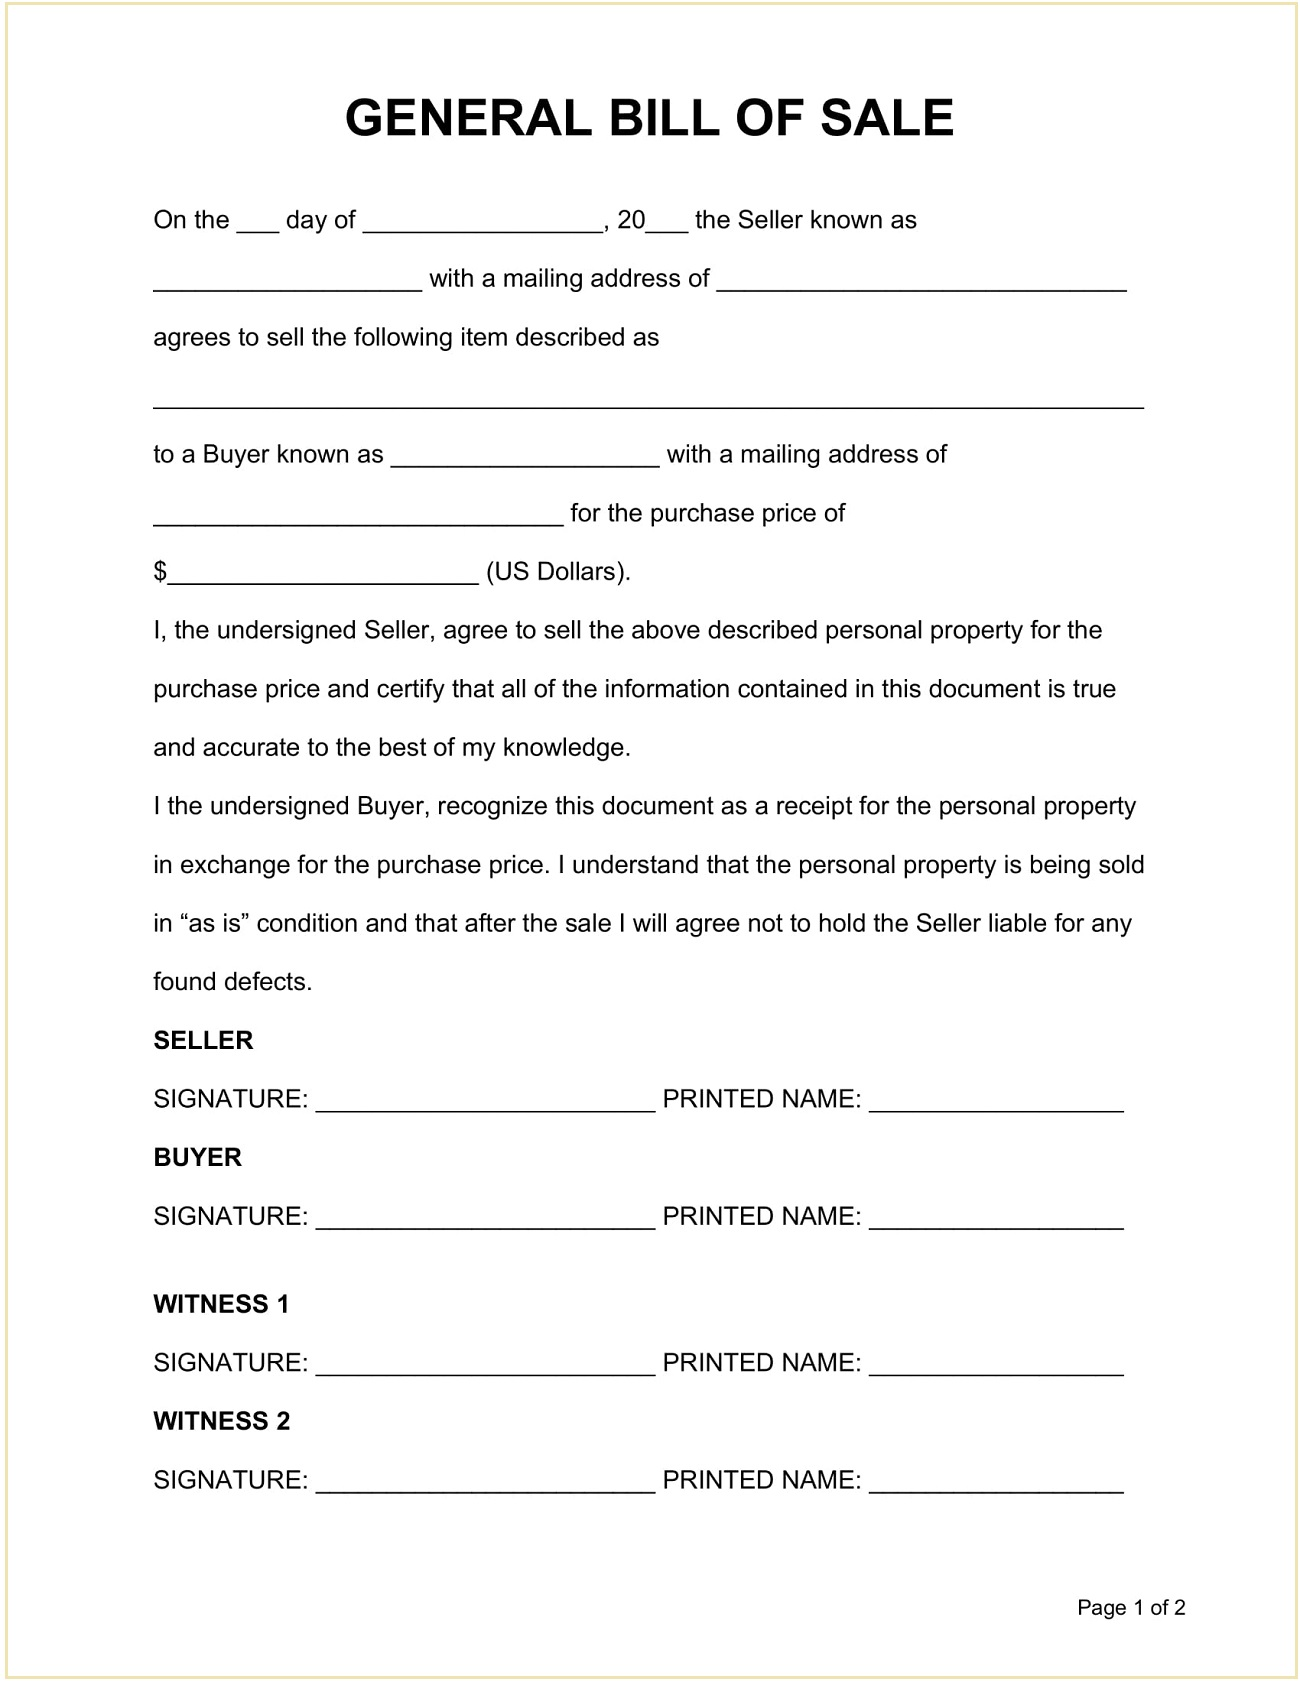 Sample General Personal Property Bill of Sale Form Template Word Doc